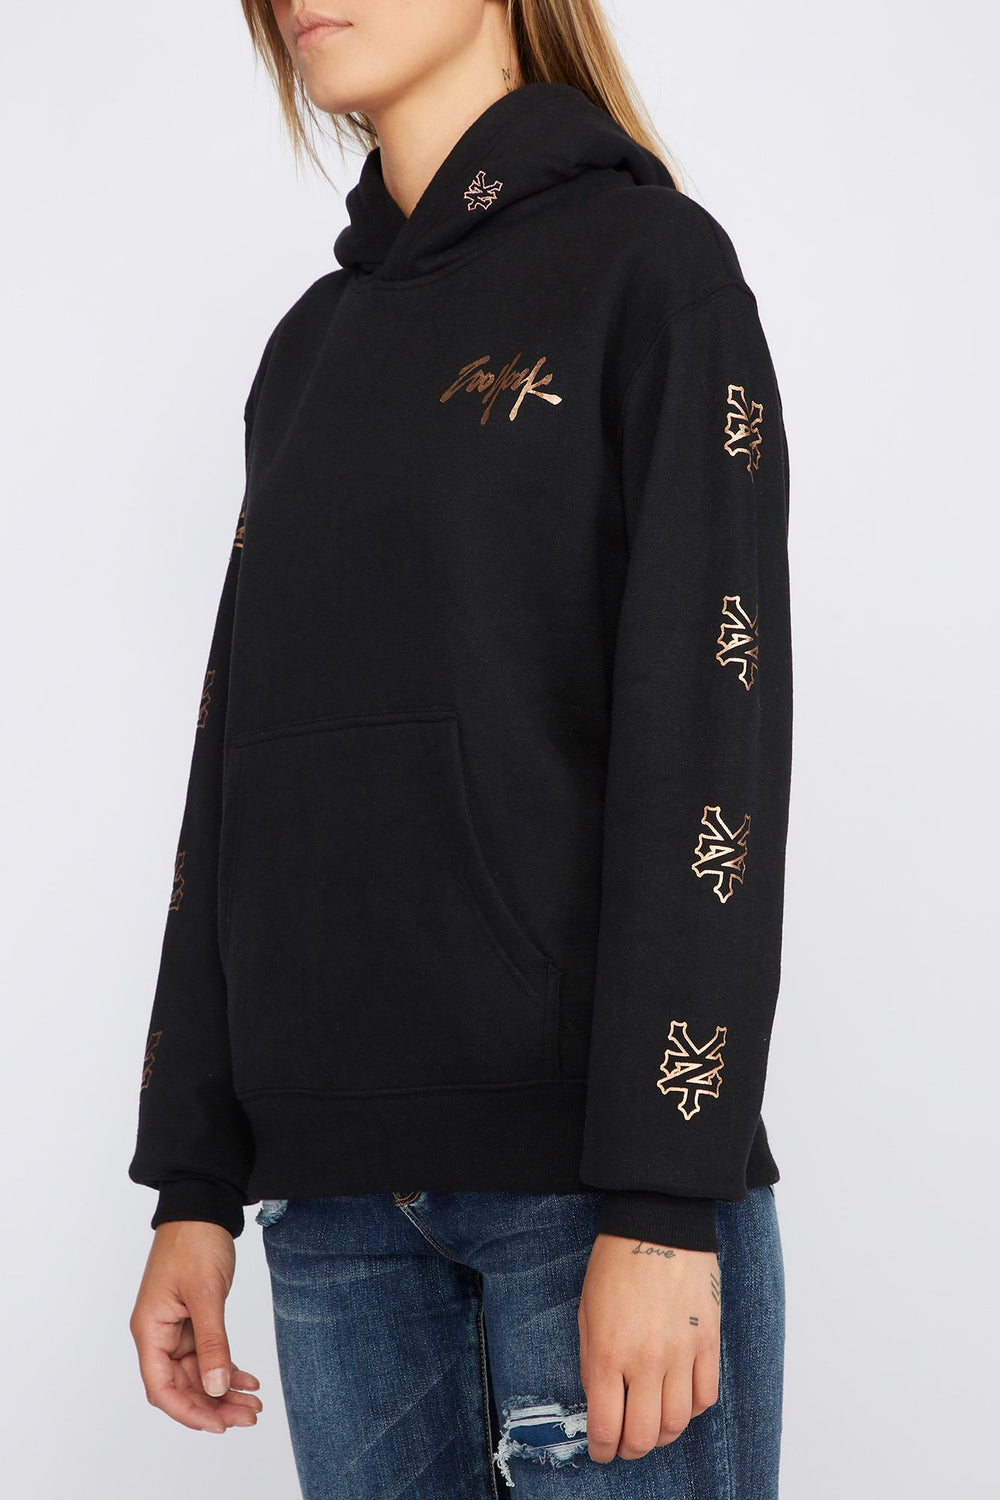 Zoo York Womens 5 NYC Boroughs Hoodie Black